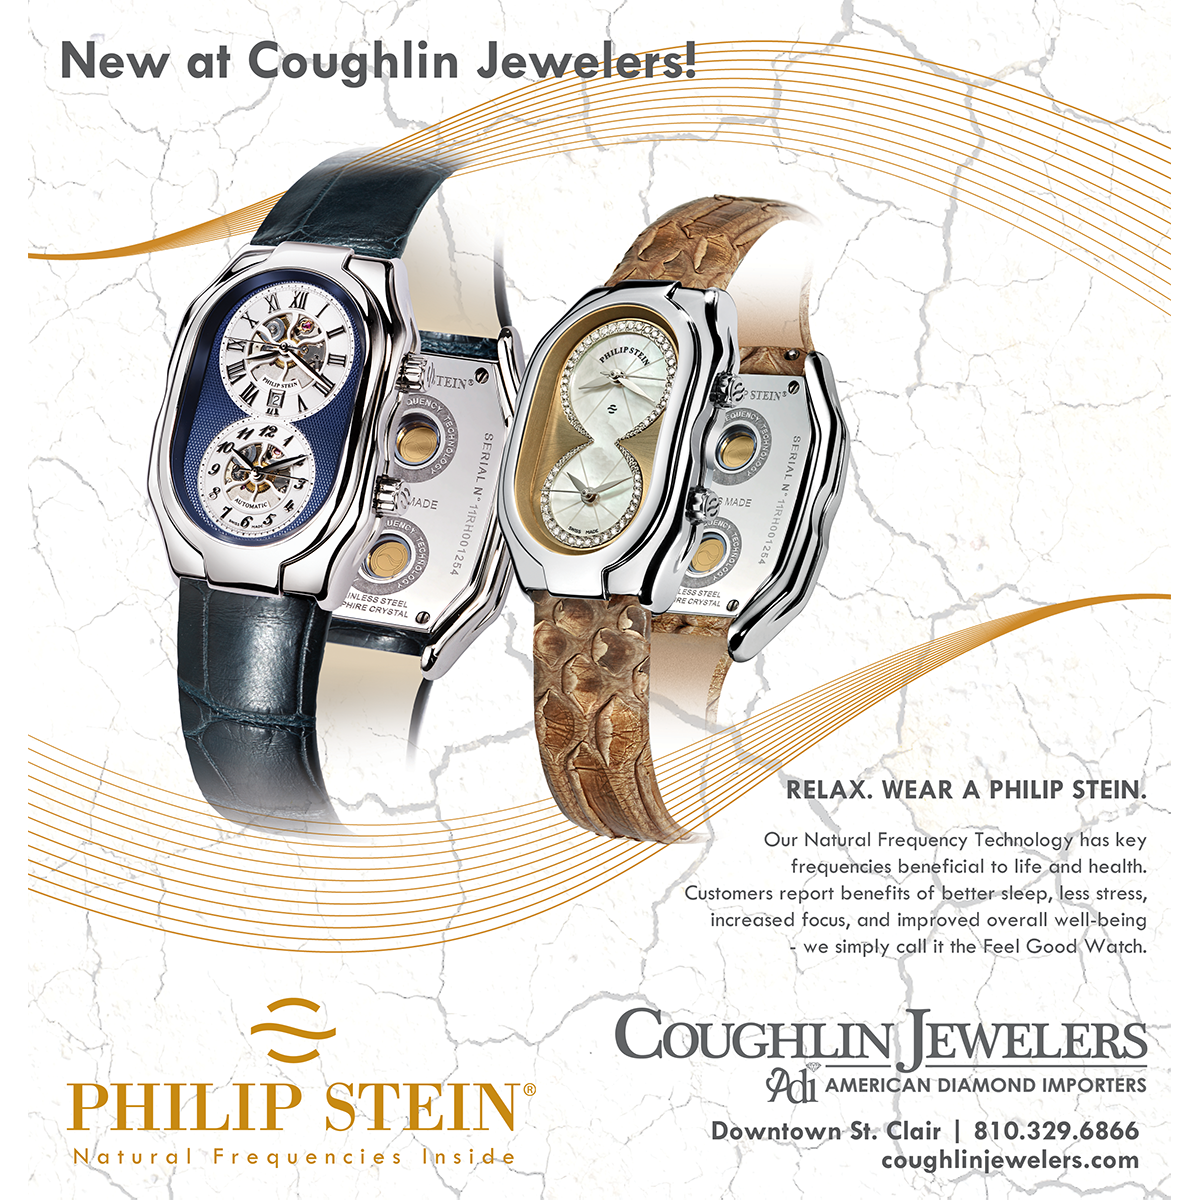 Coughlin Jewelers Philip Stein Print Ad